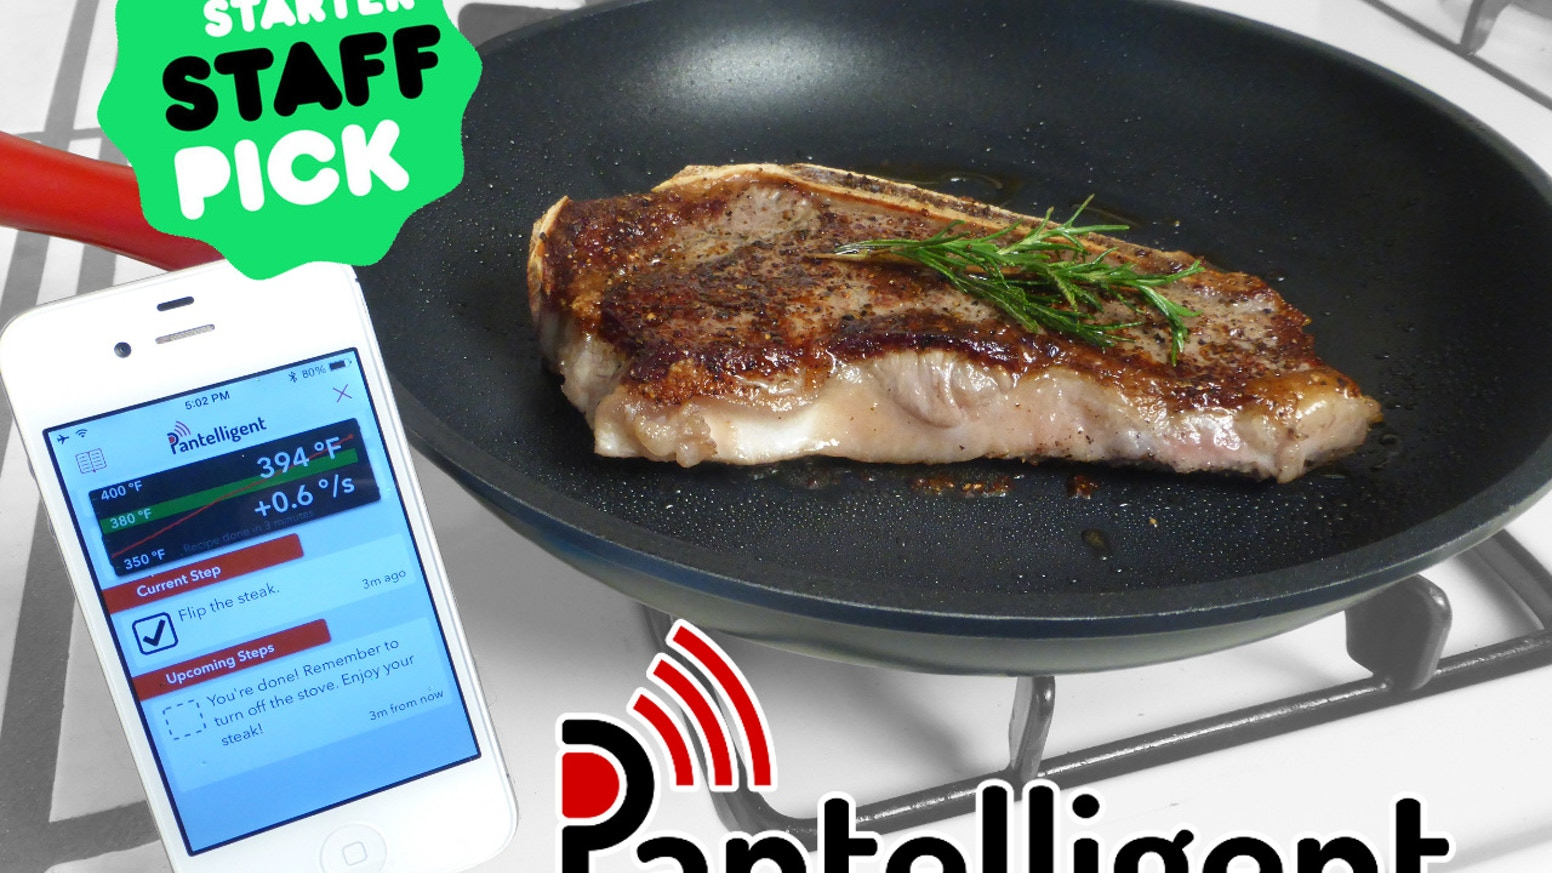 The smart frying pan of the future. Now anyone can cook delicious meals perfectly. The secret ingredient is temperature control.